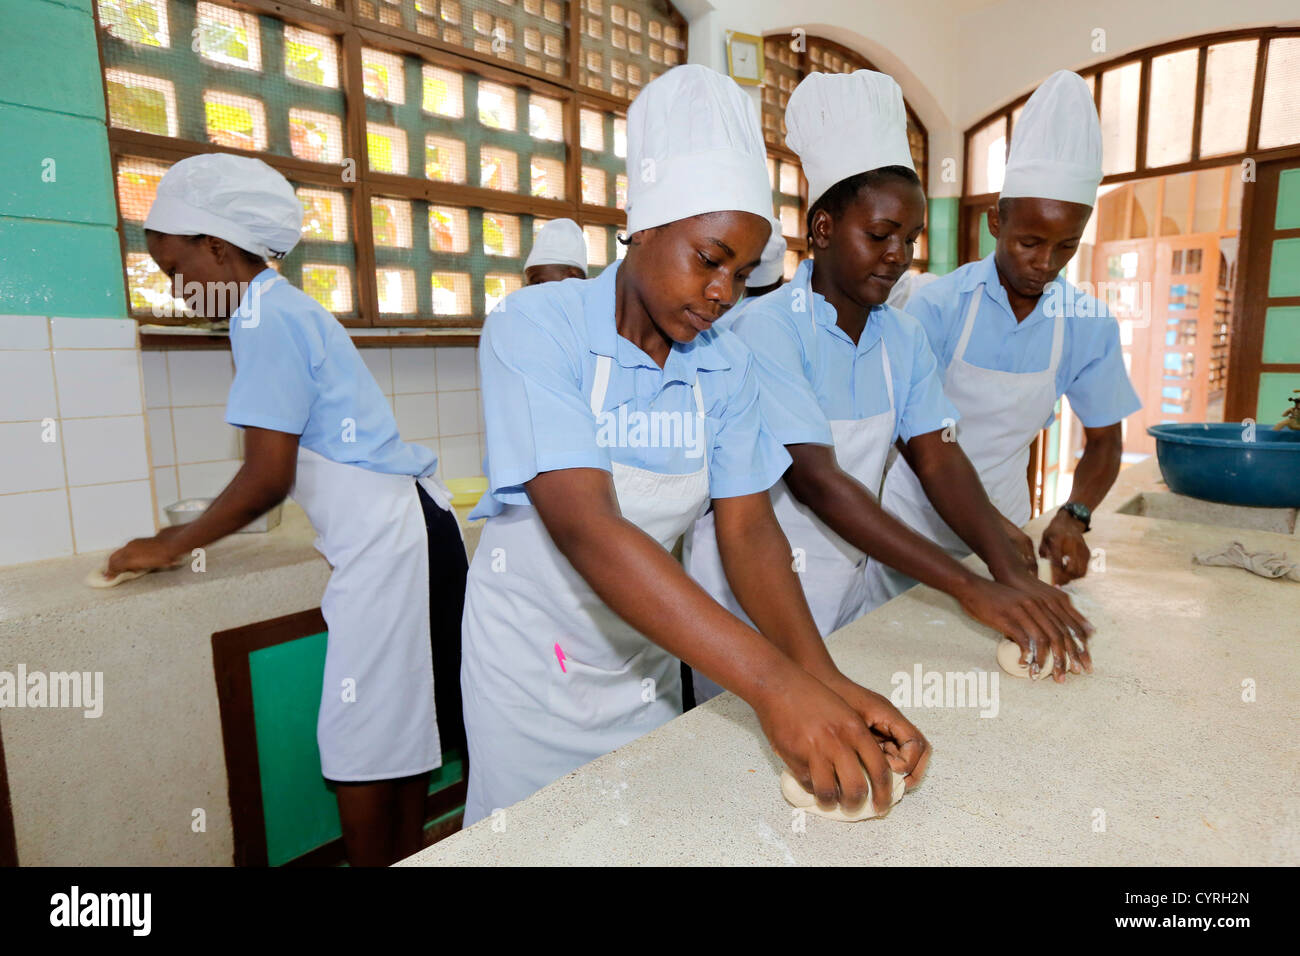 Students learning baking bread in a training bakery kitchen at a vocational training center in Machui, Zanzibar, - Stock Image